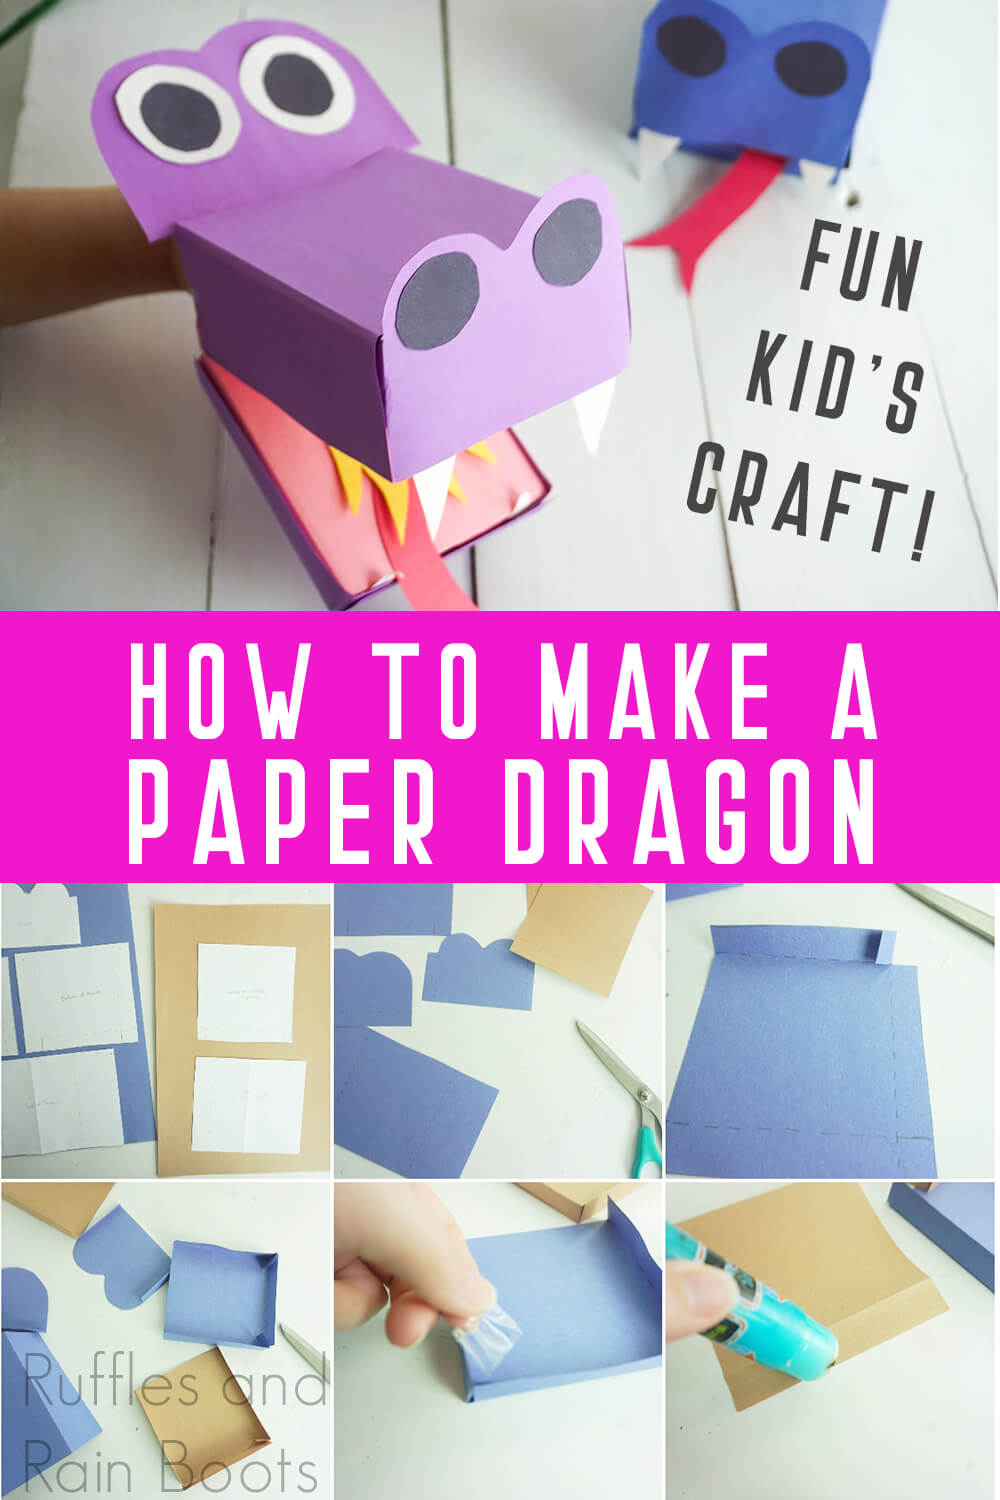 photo collage of purple and blue simple puppet dragons with text which reads how to make a paper dragon fun kid's craft